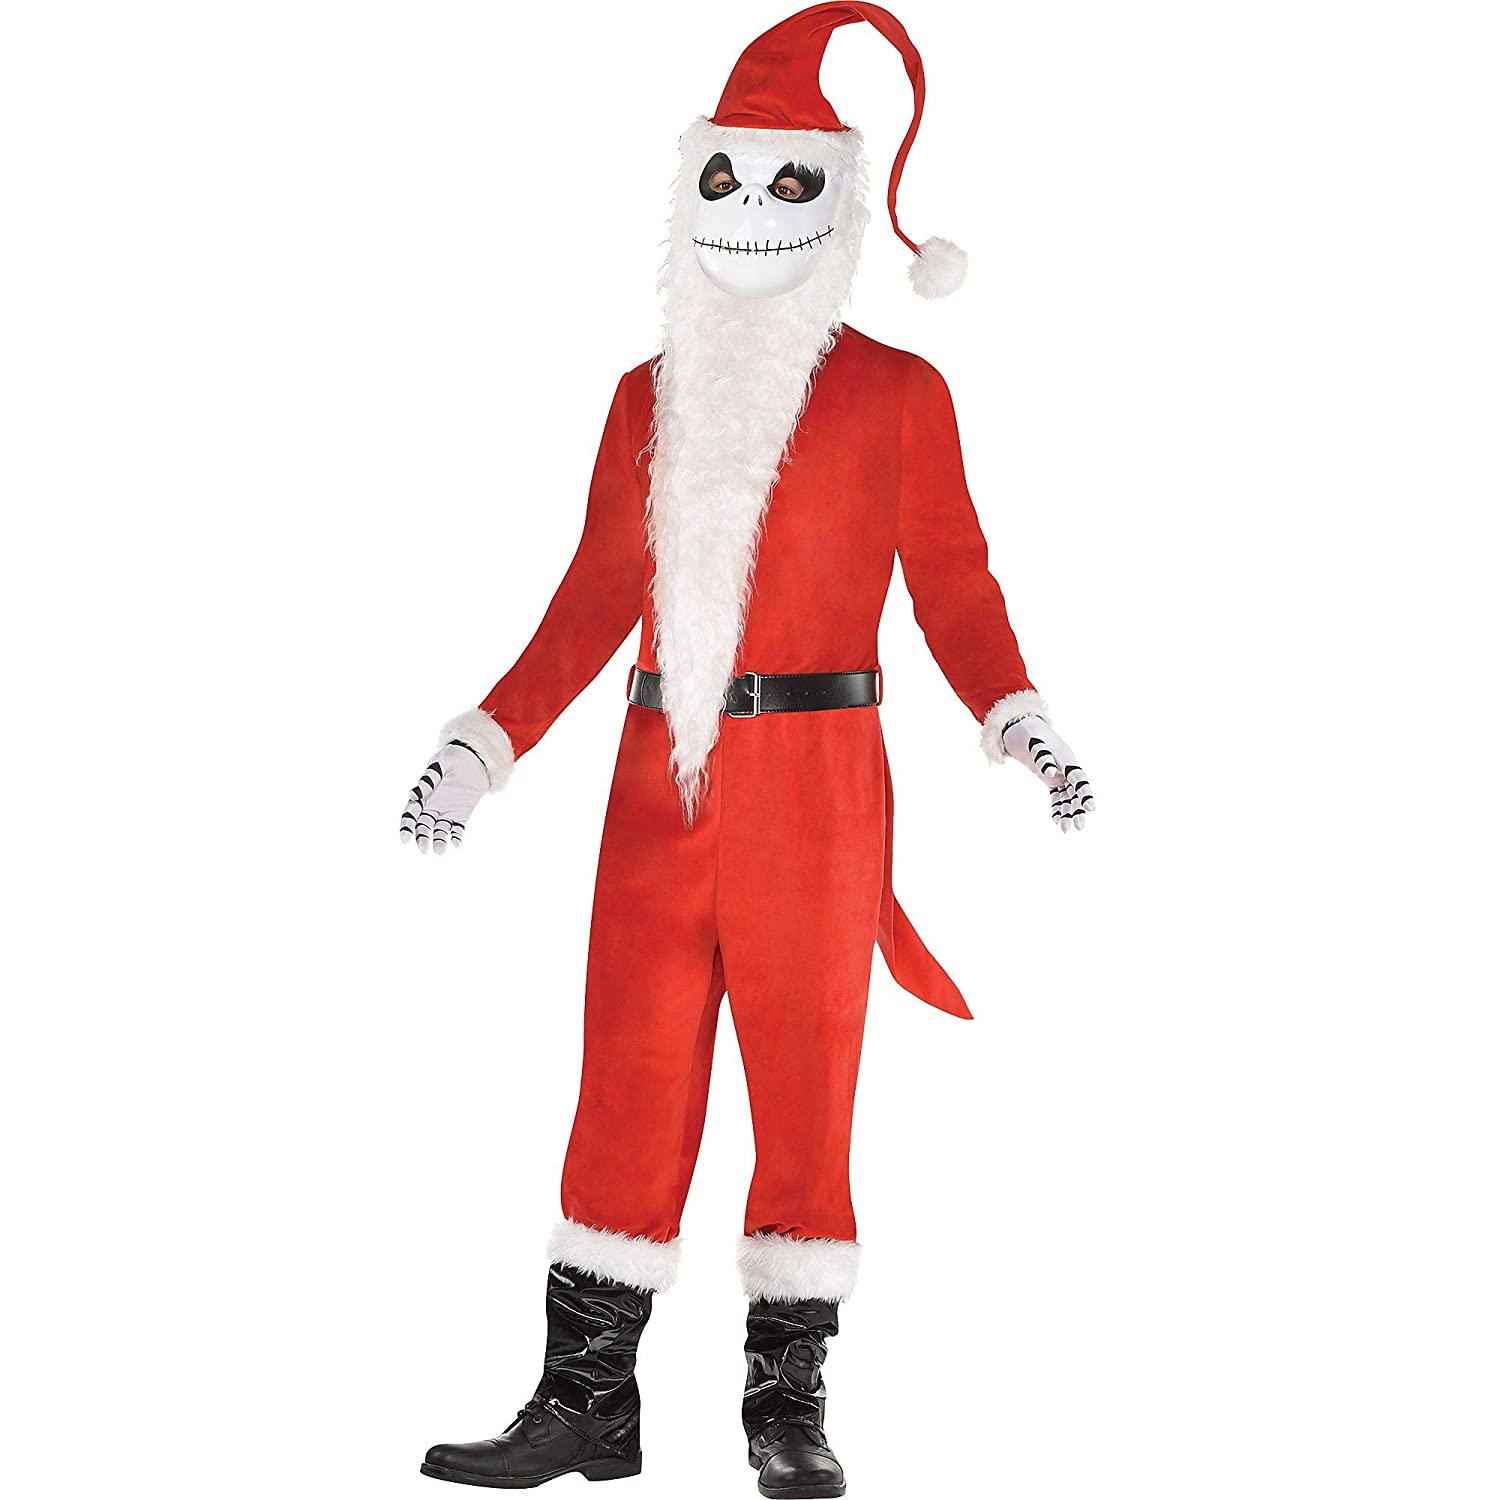 Nightmare Before Christmas Sandy Claws Costume, Mens, Includes Mask, and  More